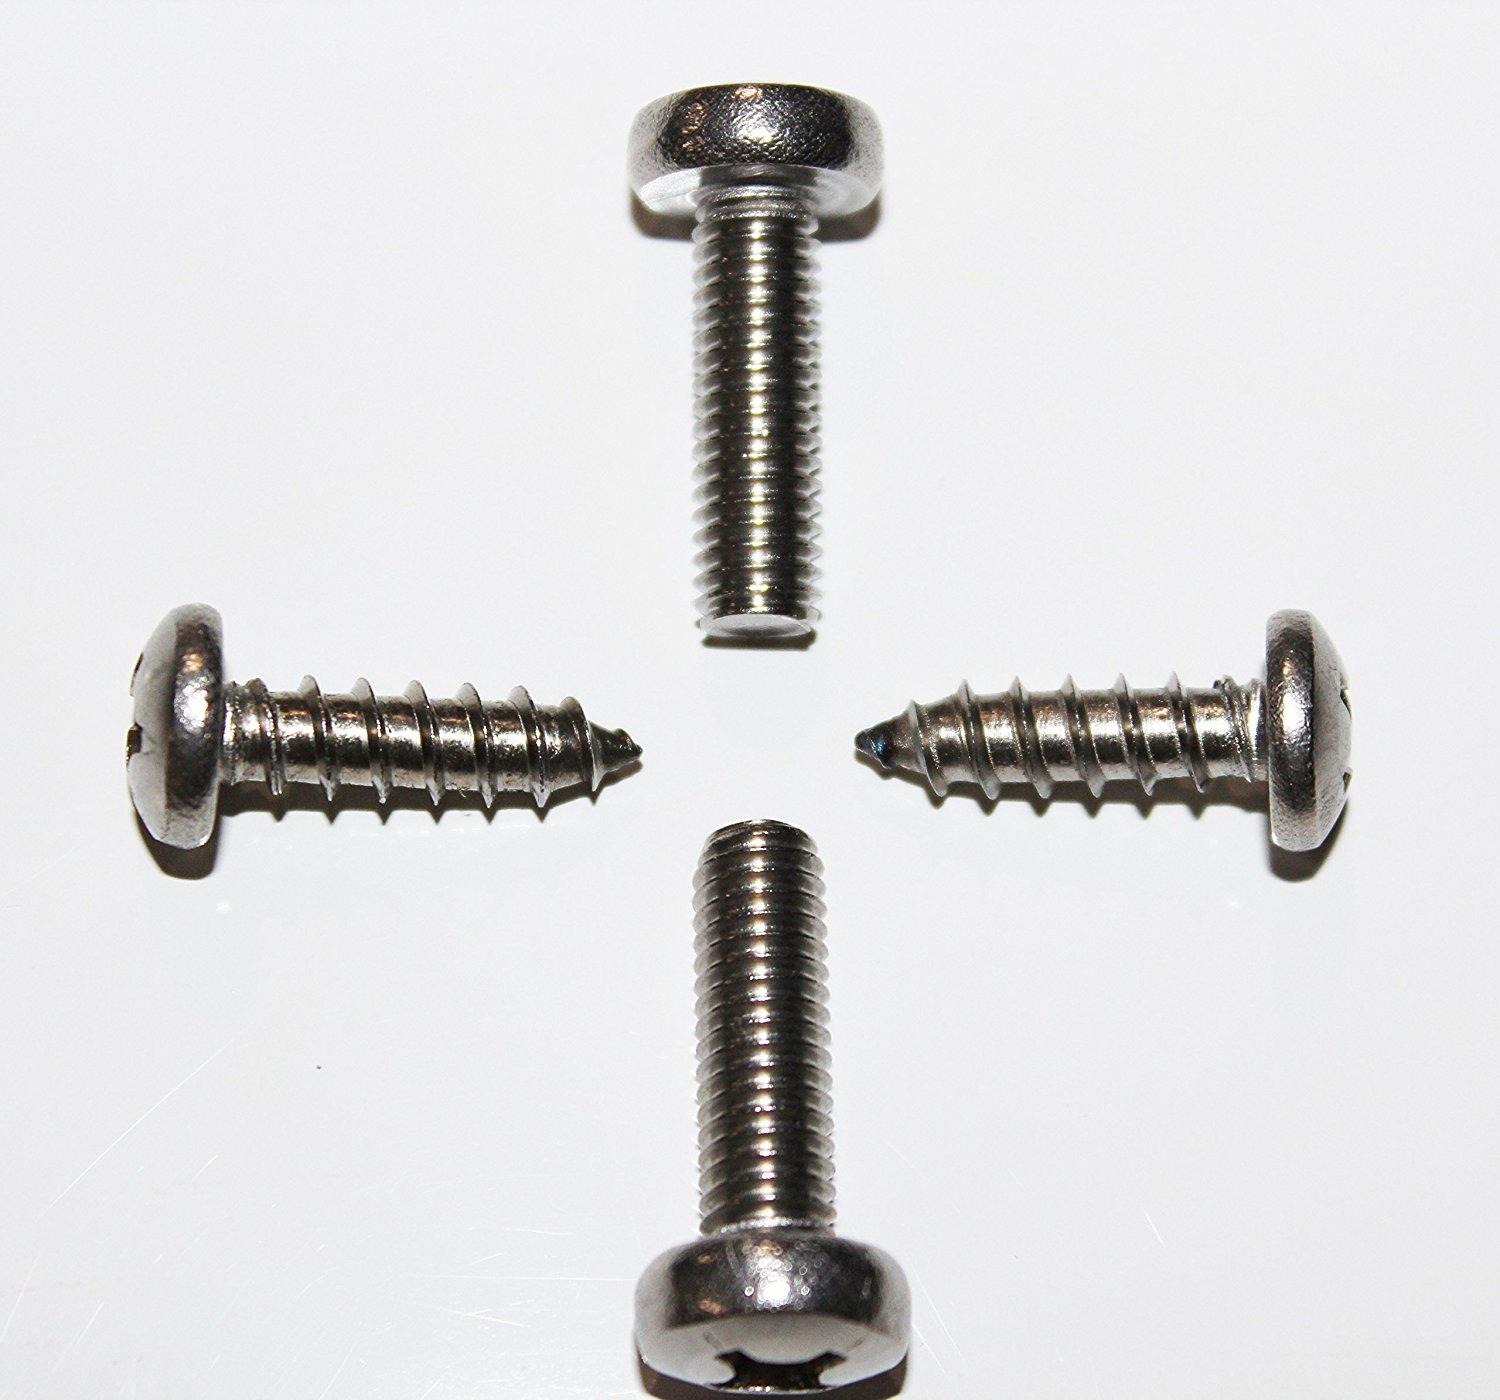 HPP License plate Stainless Steel Screws for All Infiniti Models from 1989-2015